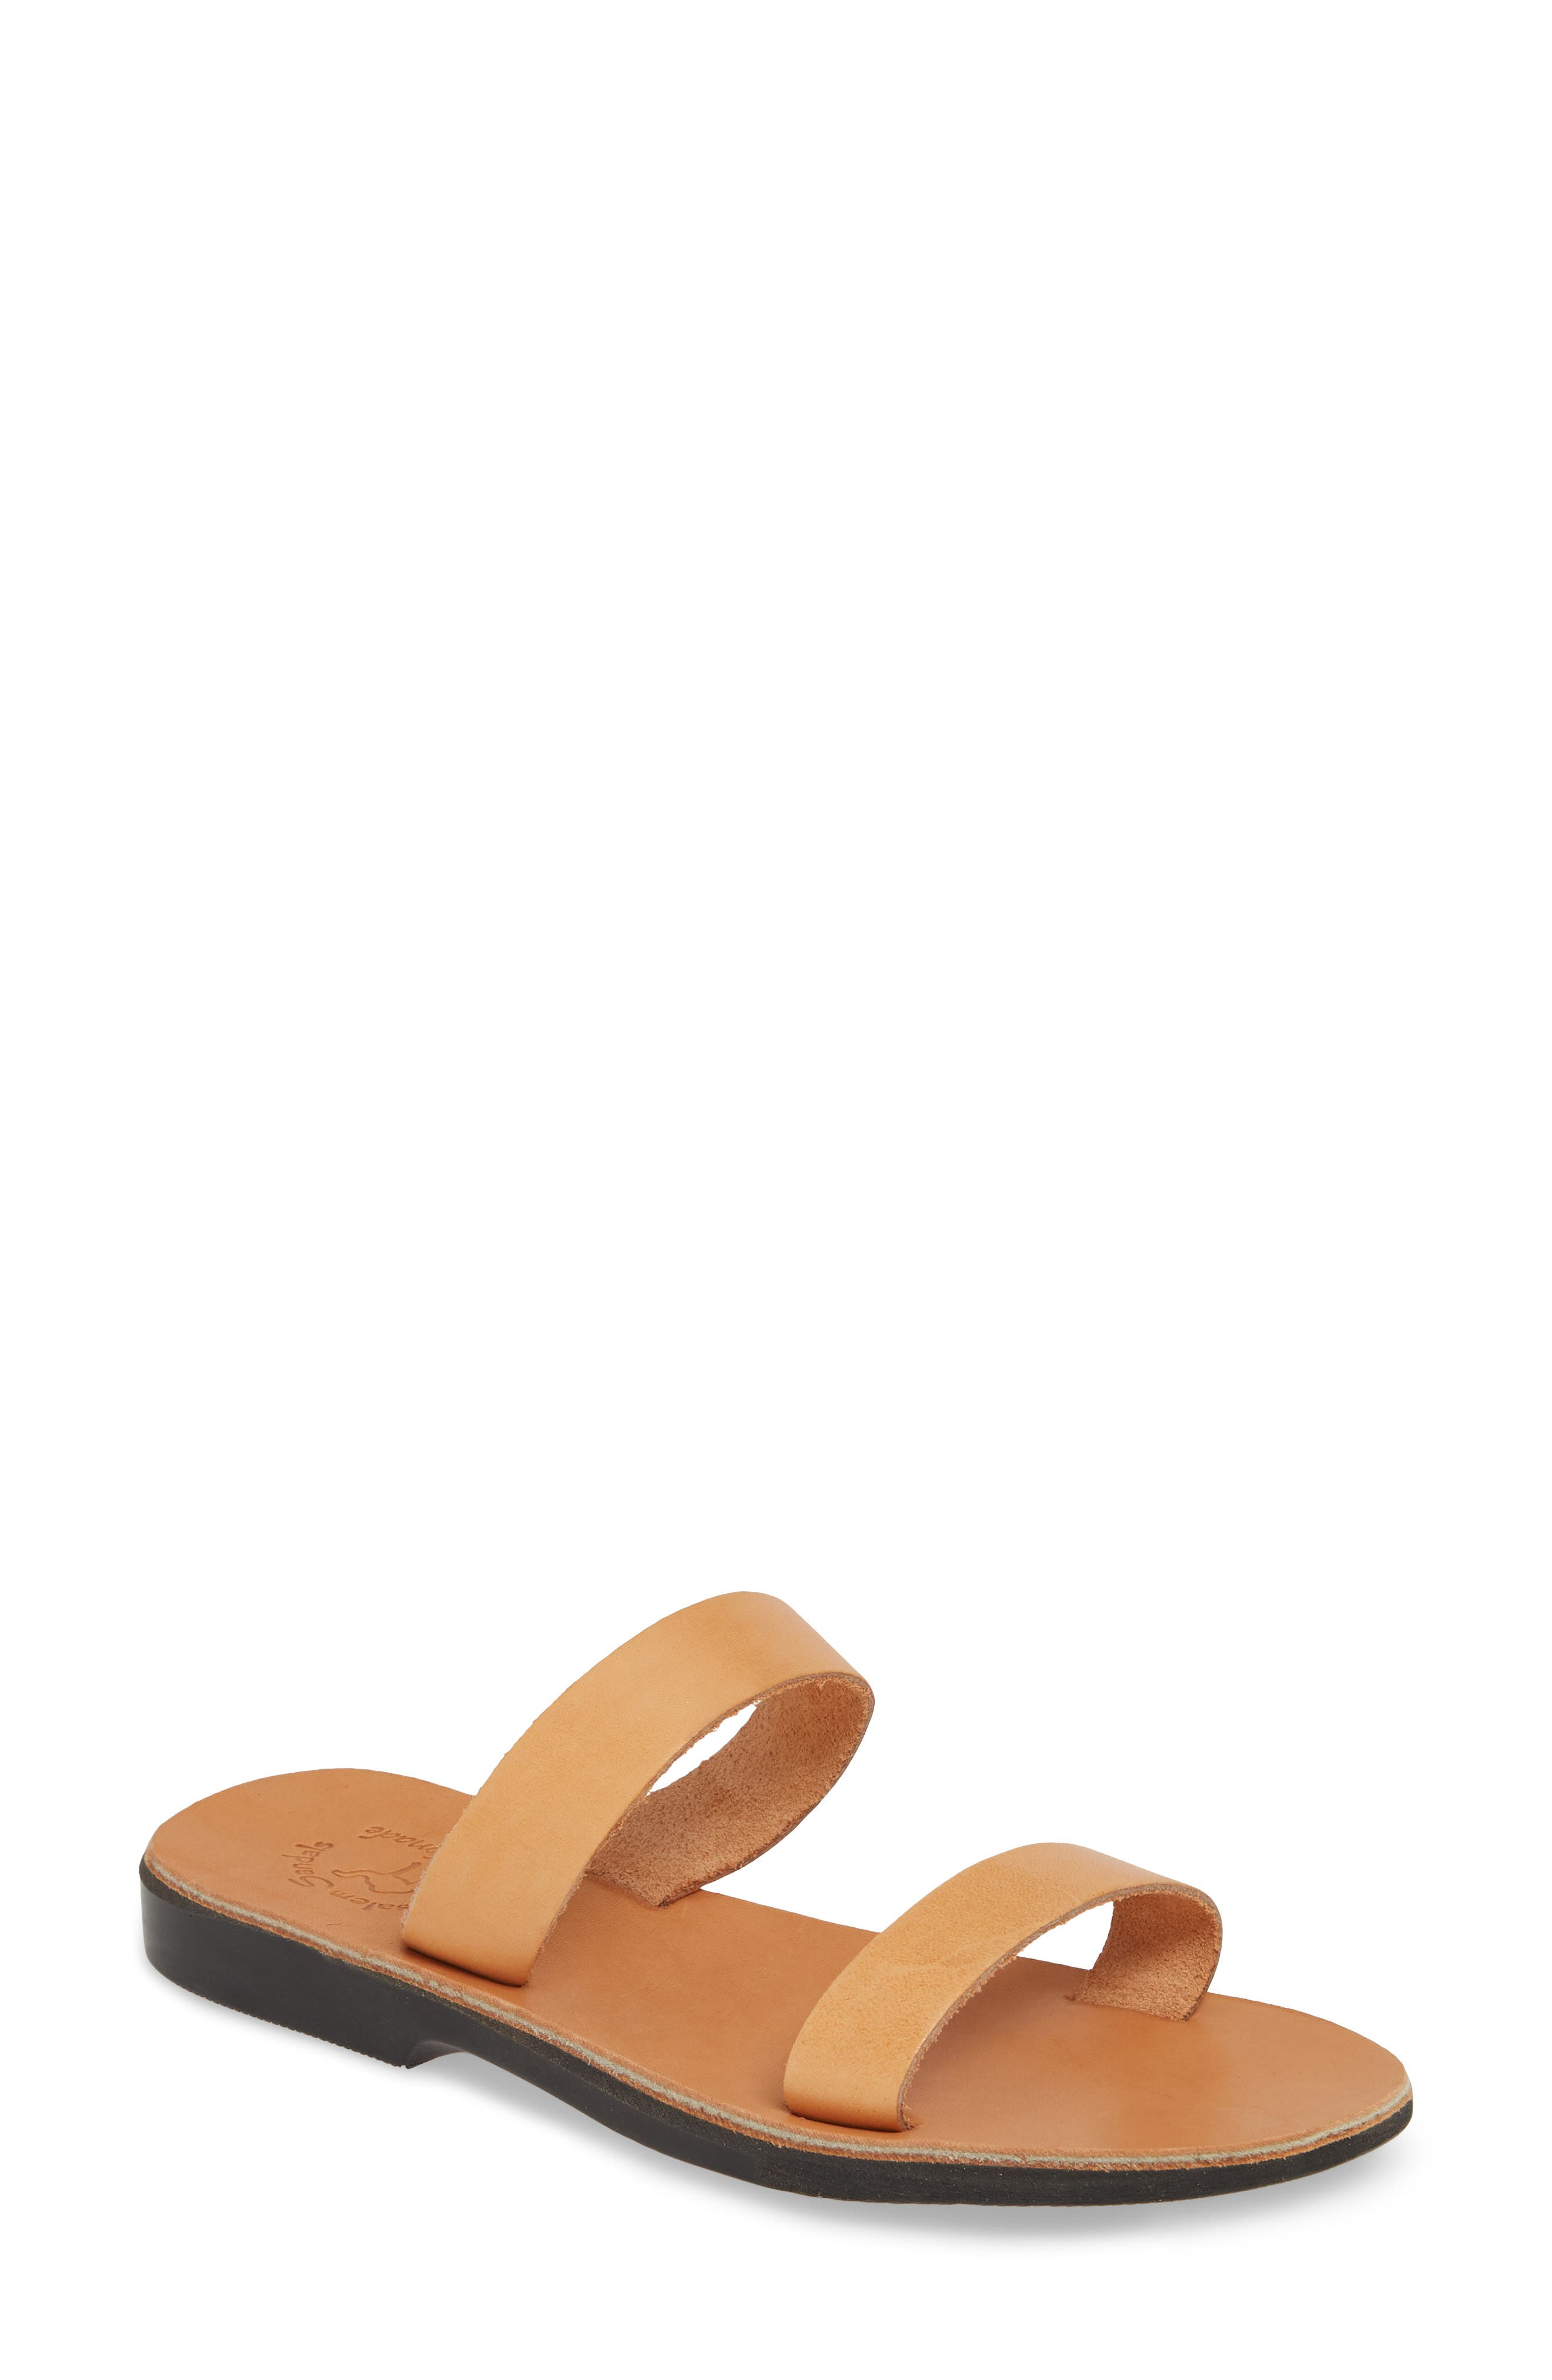 Ultrasmooth leather distinguishes a minimalist slide sandal carefully constructed by Palestinian craftsmen. Style Name: Jerusalem Sandals Ada Slide Sandal (Women). Style Number: 5790594. Available in stores.